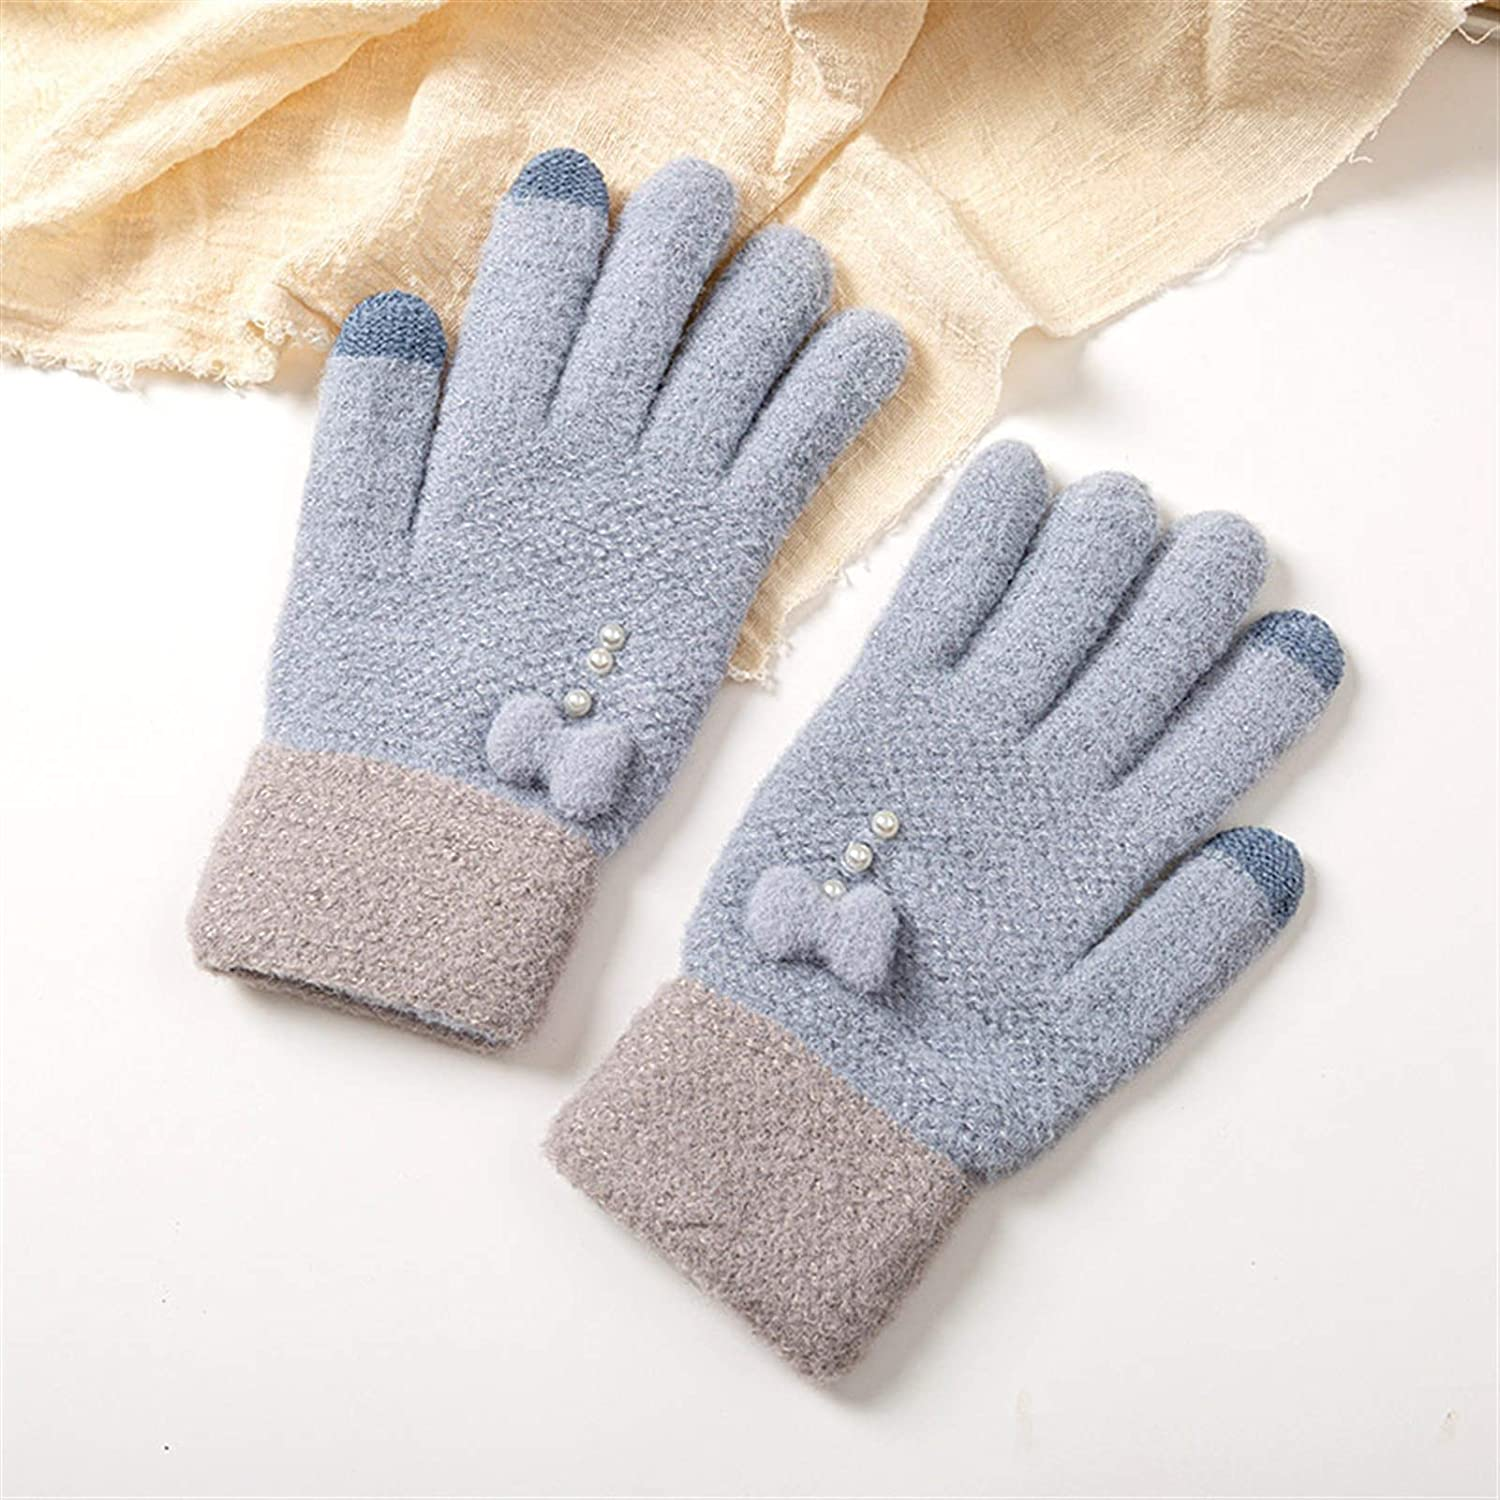 HUKJIAIJ Gloves Fashion Female Knitted Gloves Winter Bow-Knot Pearl Decoration Women Outdoor Full Finger Gloves Thick Keep Warm Lady Mittens (Color : Blue, Gloves Size : One Size)